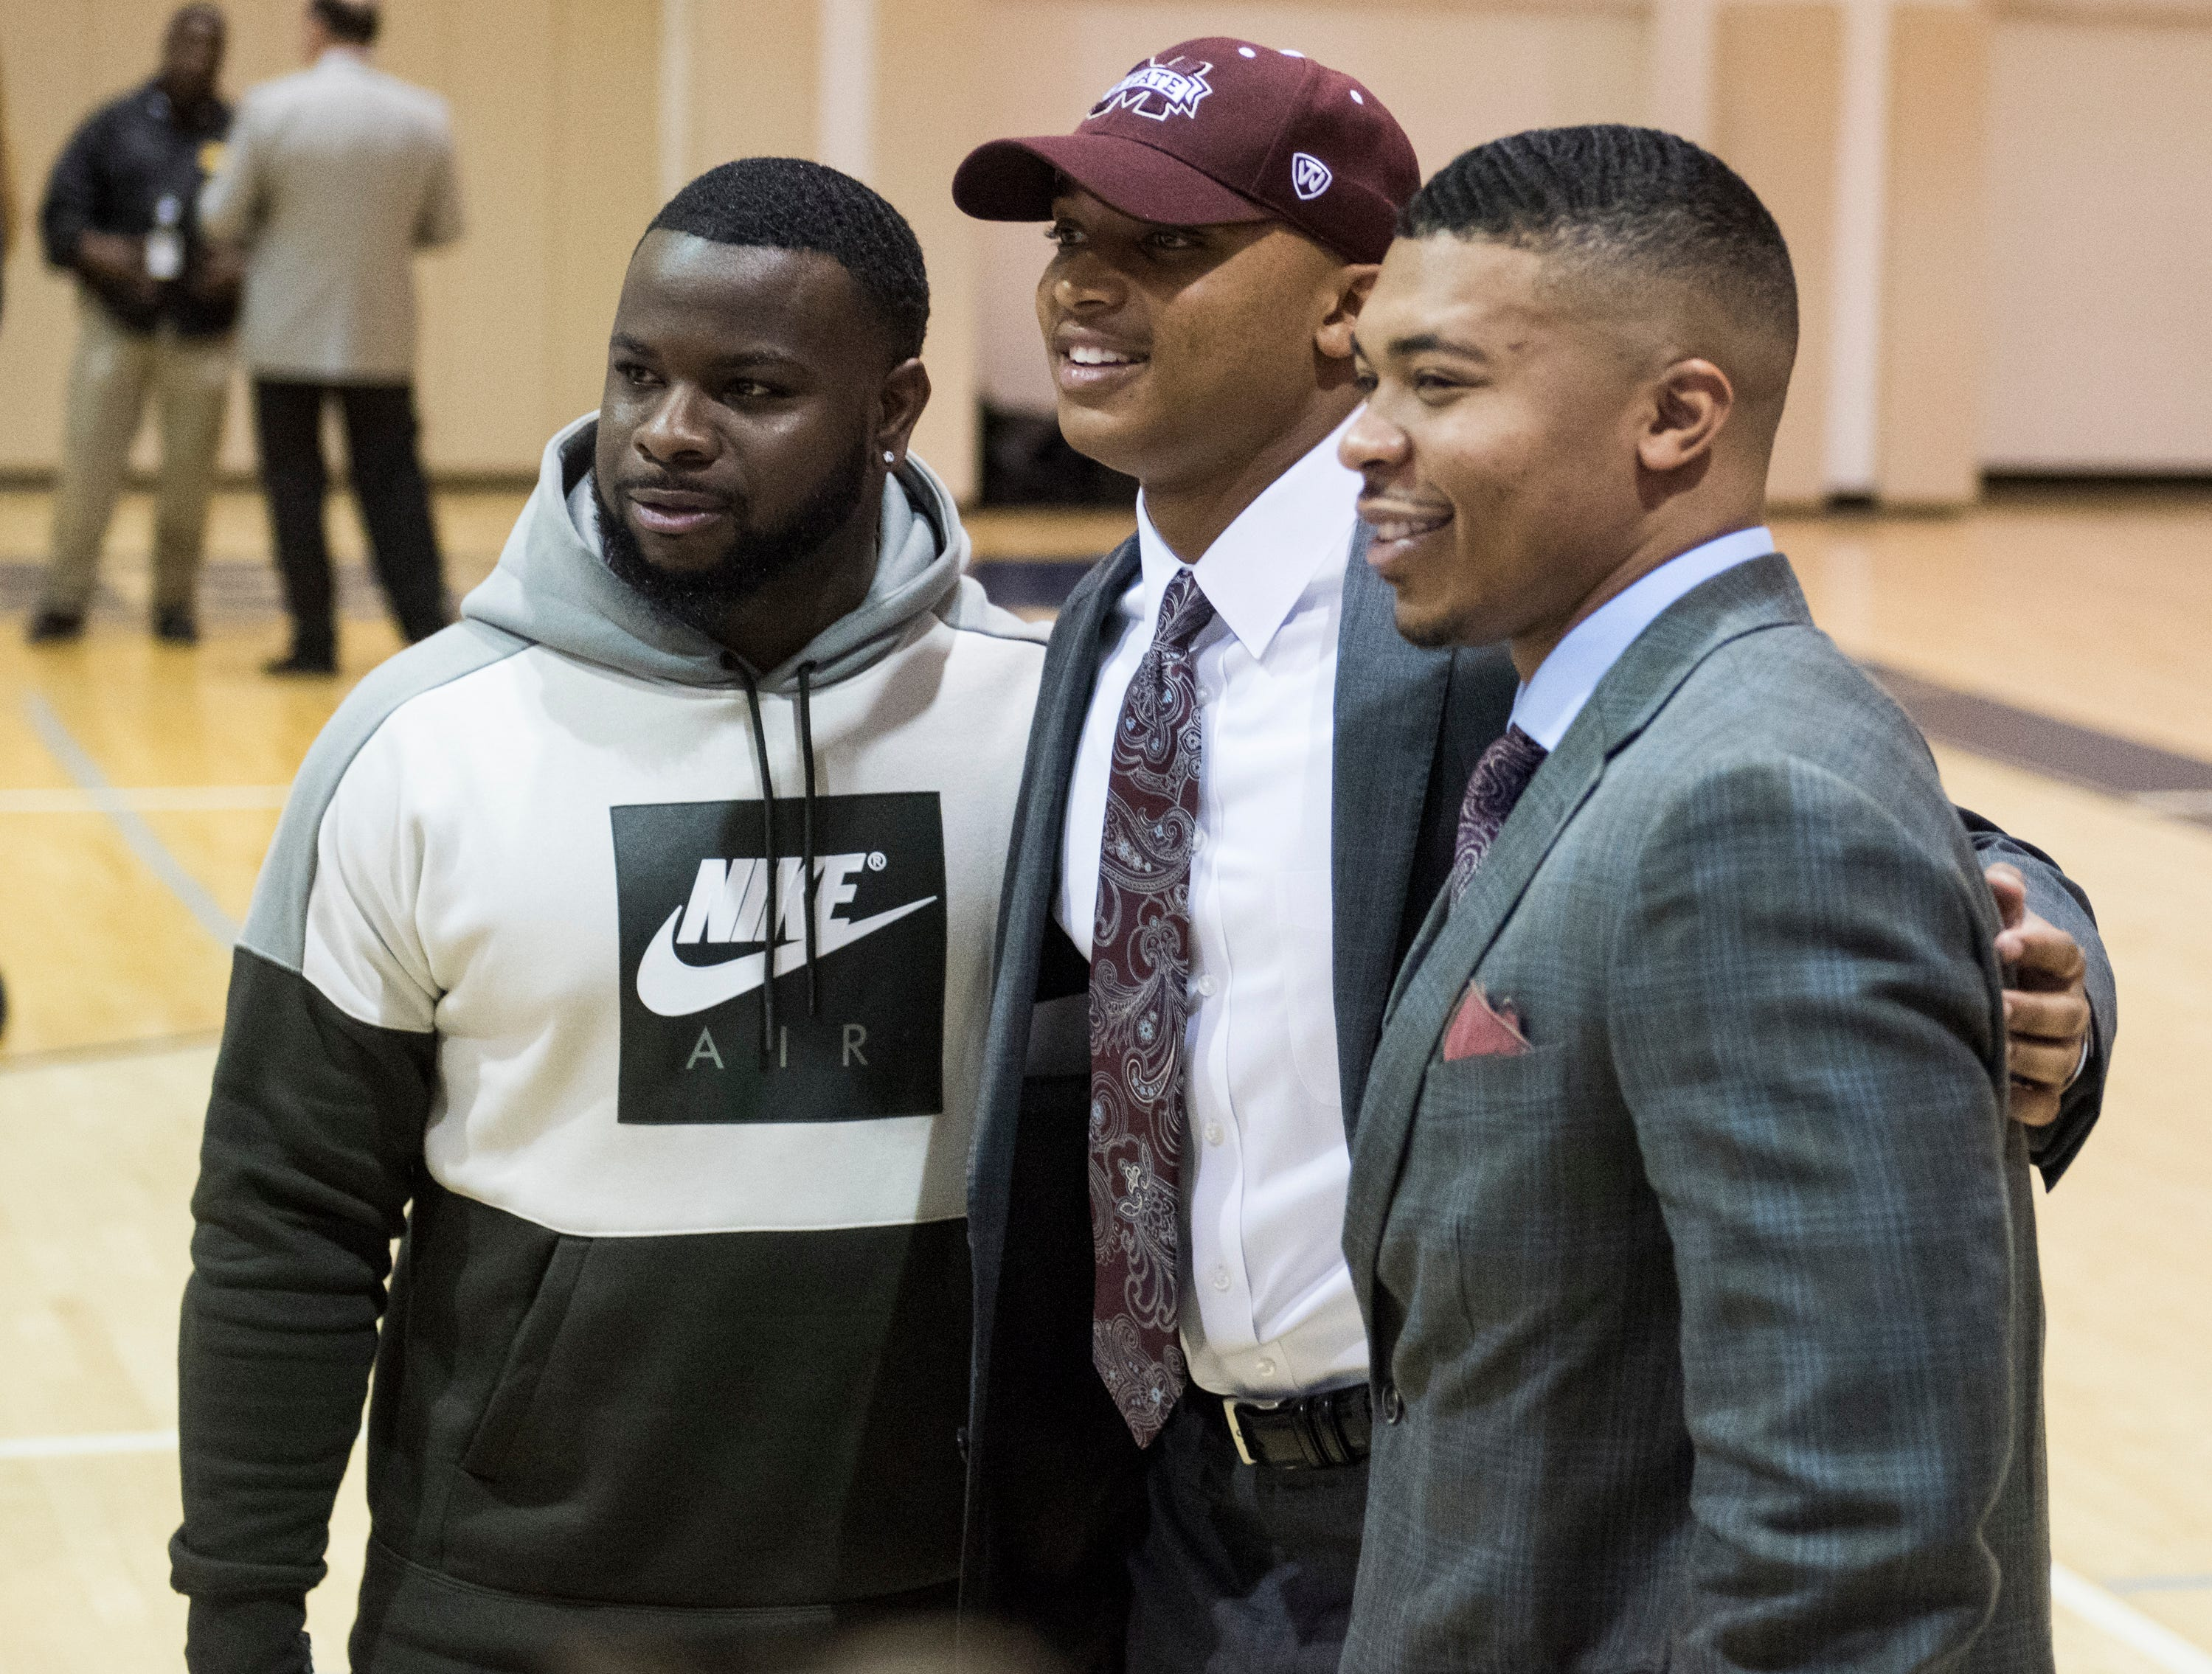 Collin Duncan poses with his trainer and his brother CJ Duncan during signing day at St. James High School in Montgomery, Ala., on Wednesday, Feb. 6, 2019.